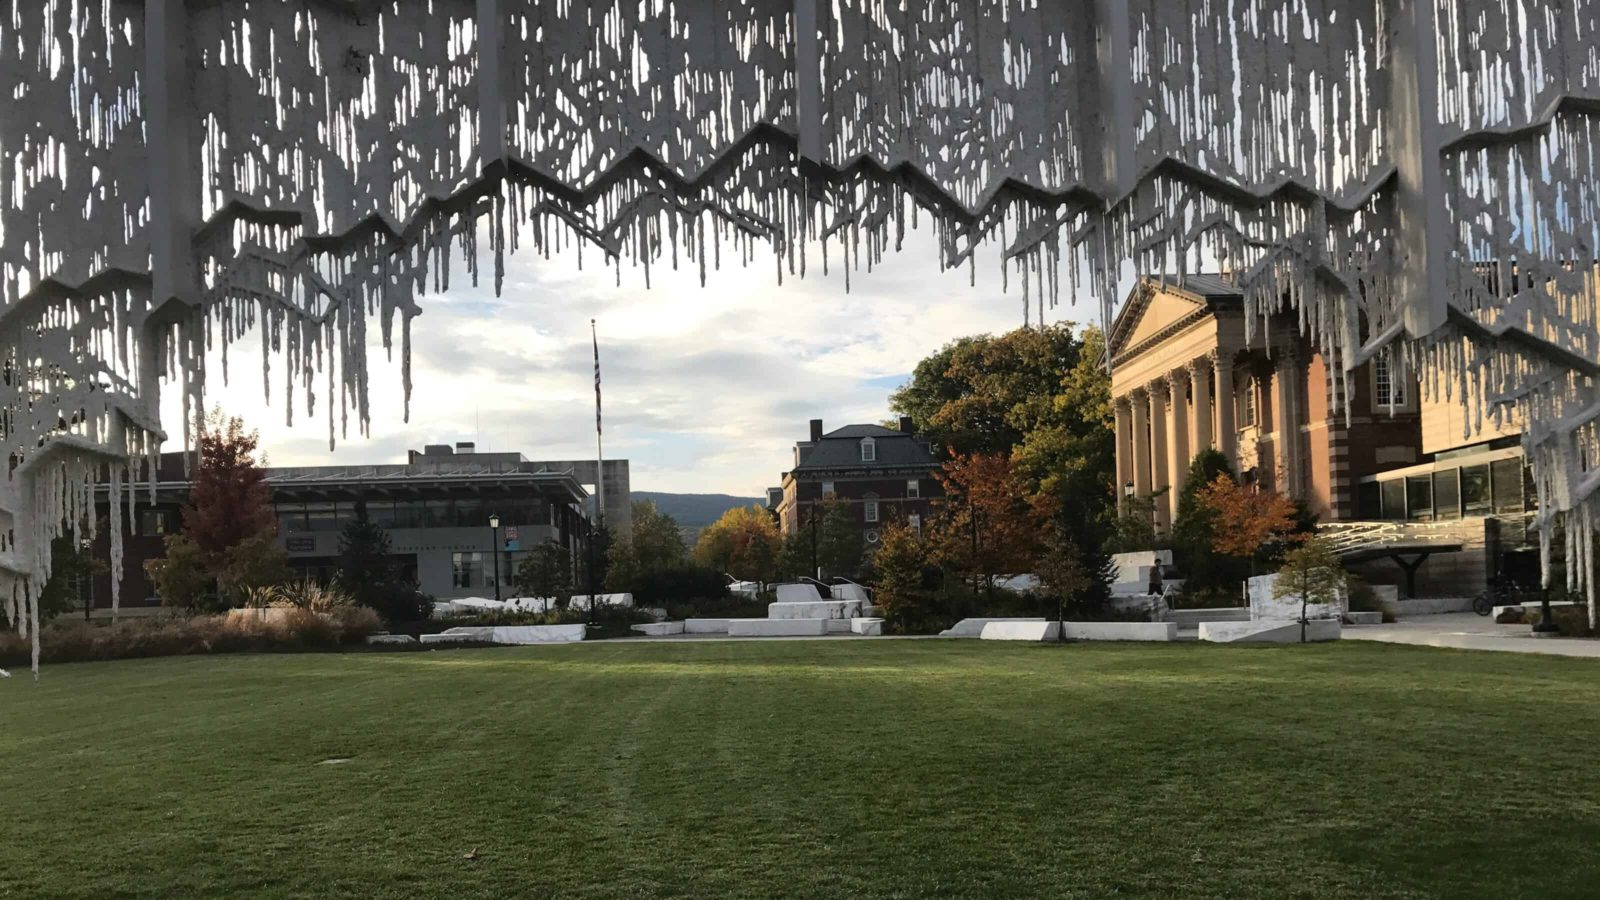 In her first major public art project, Diana Al-Hadid filled the Williams College campus with shapes like melting ice.